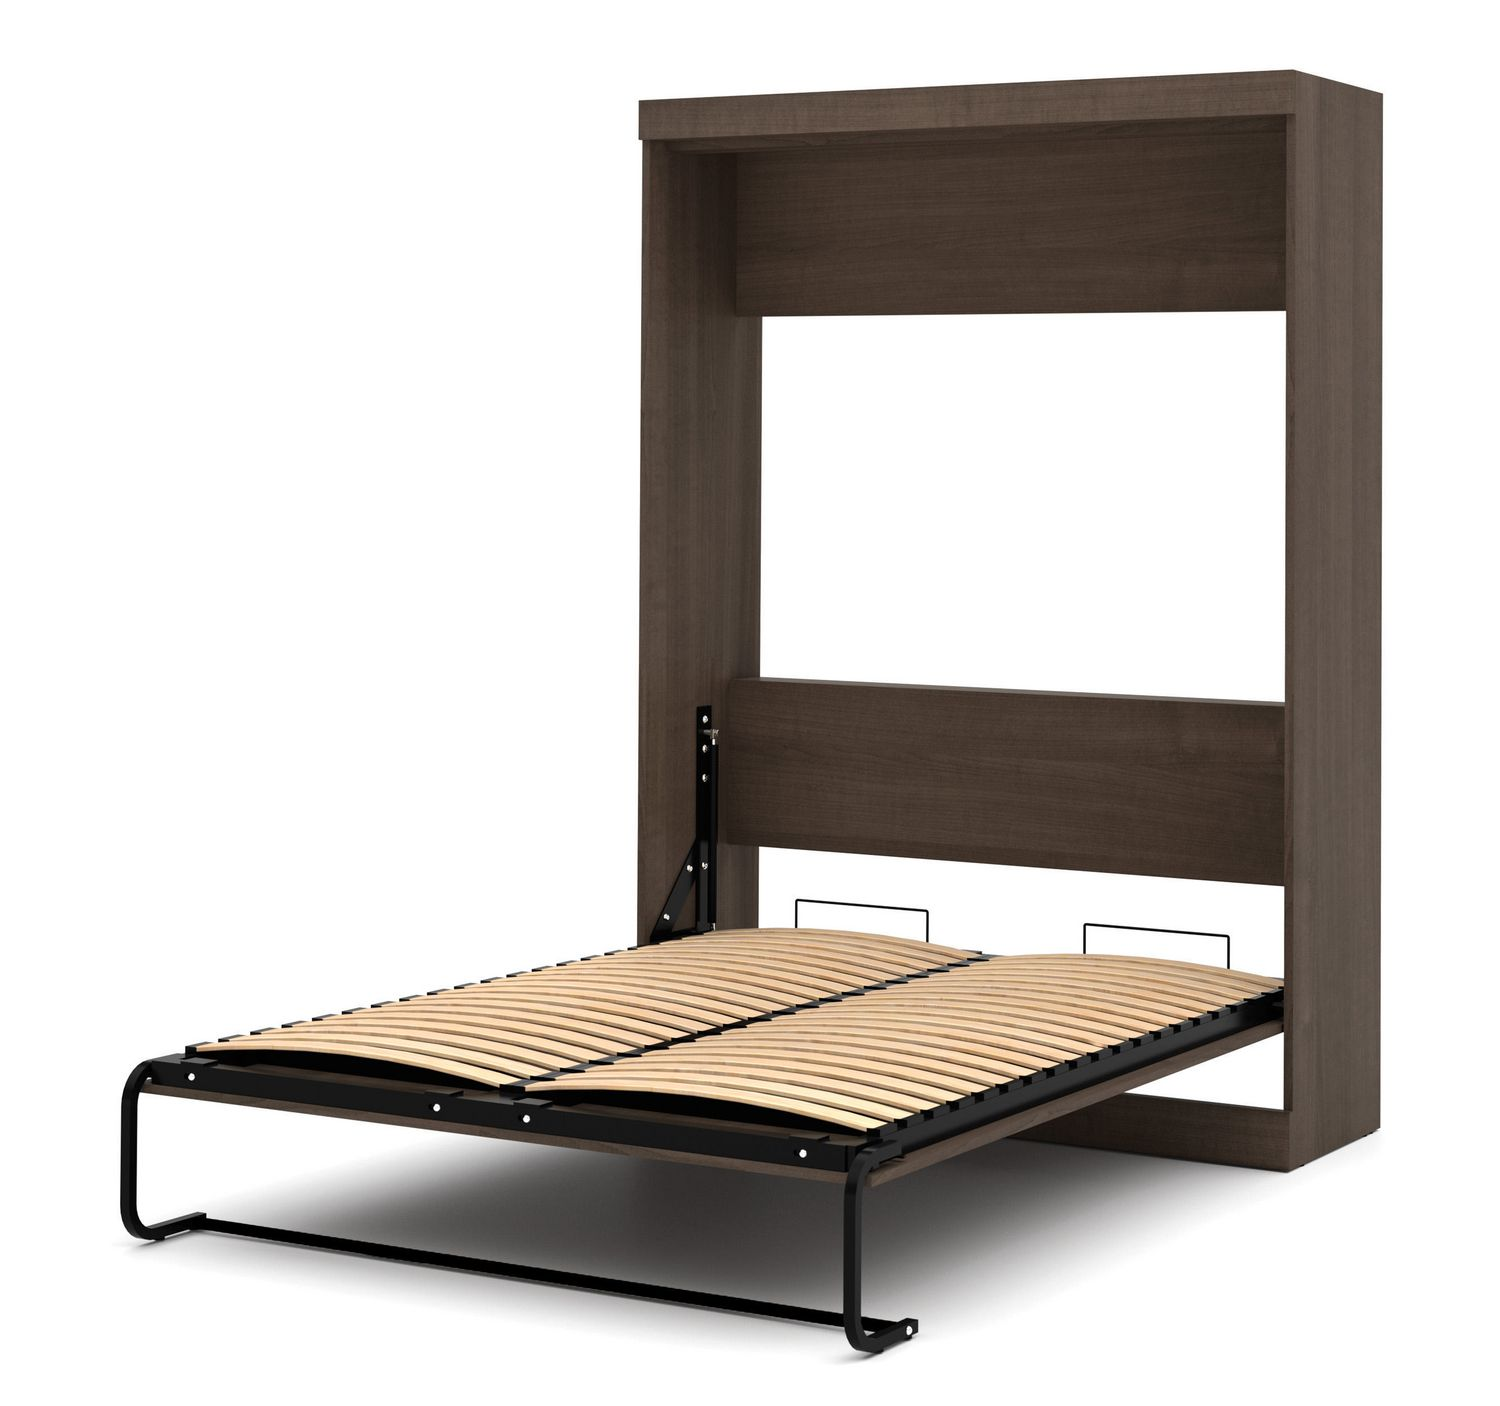 Nebula By Bestar Full Wall Bed Walmart Canada